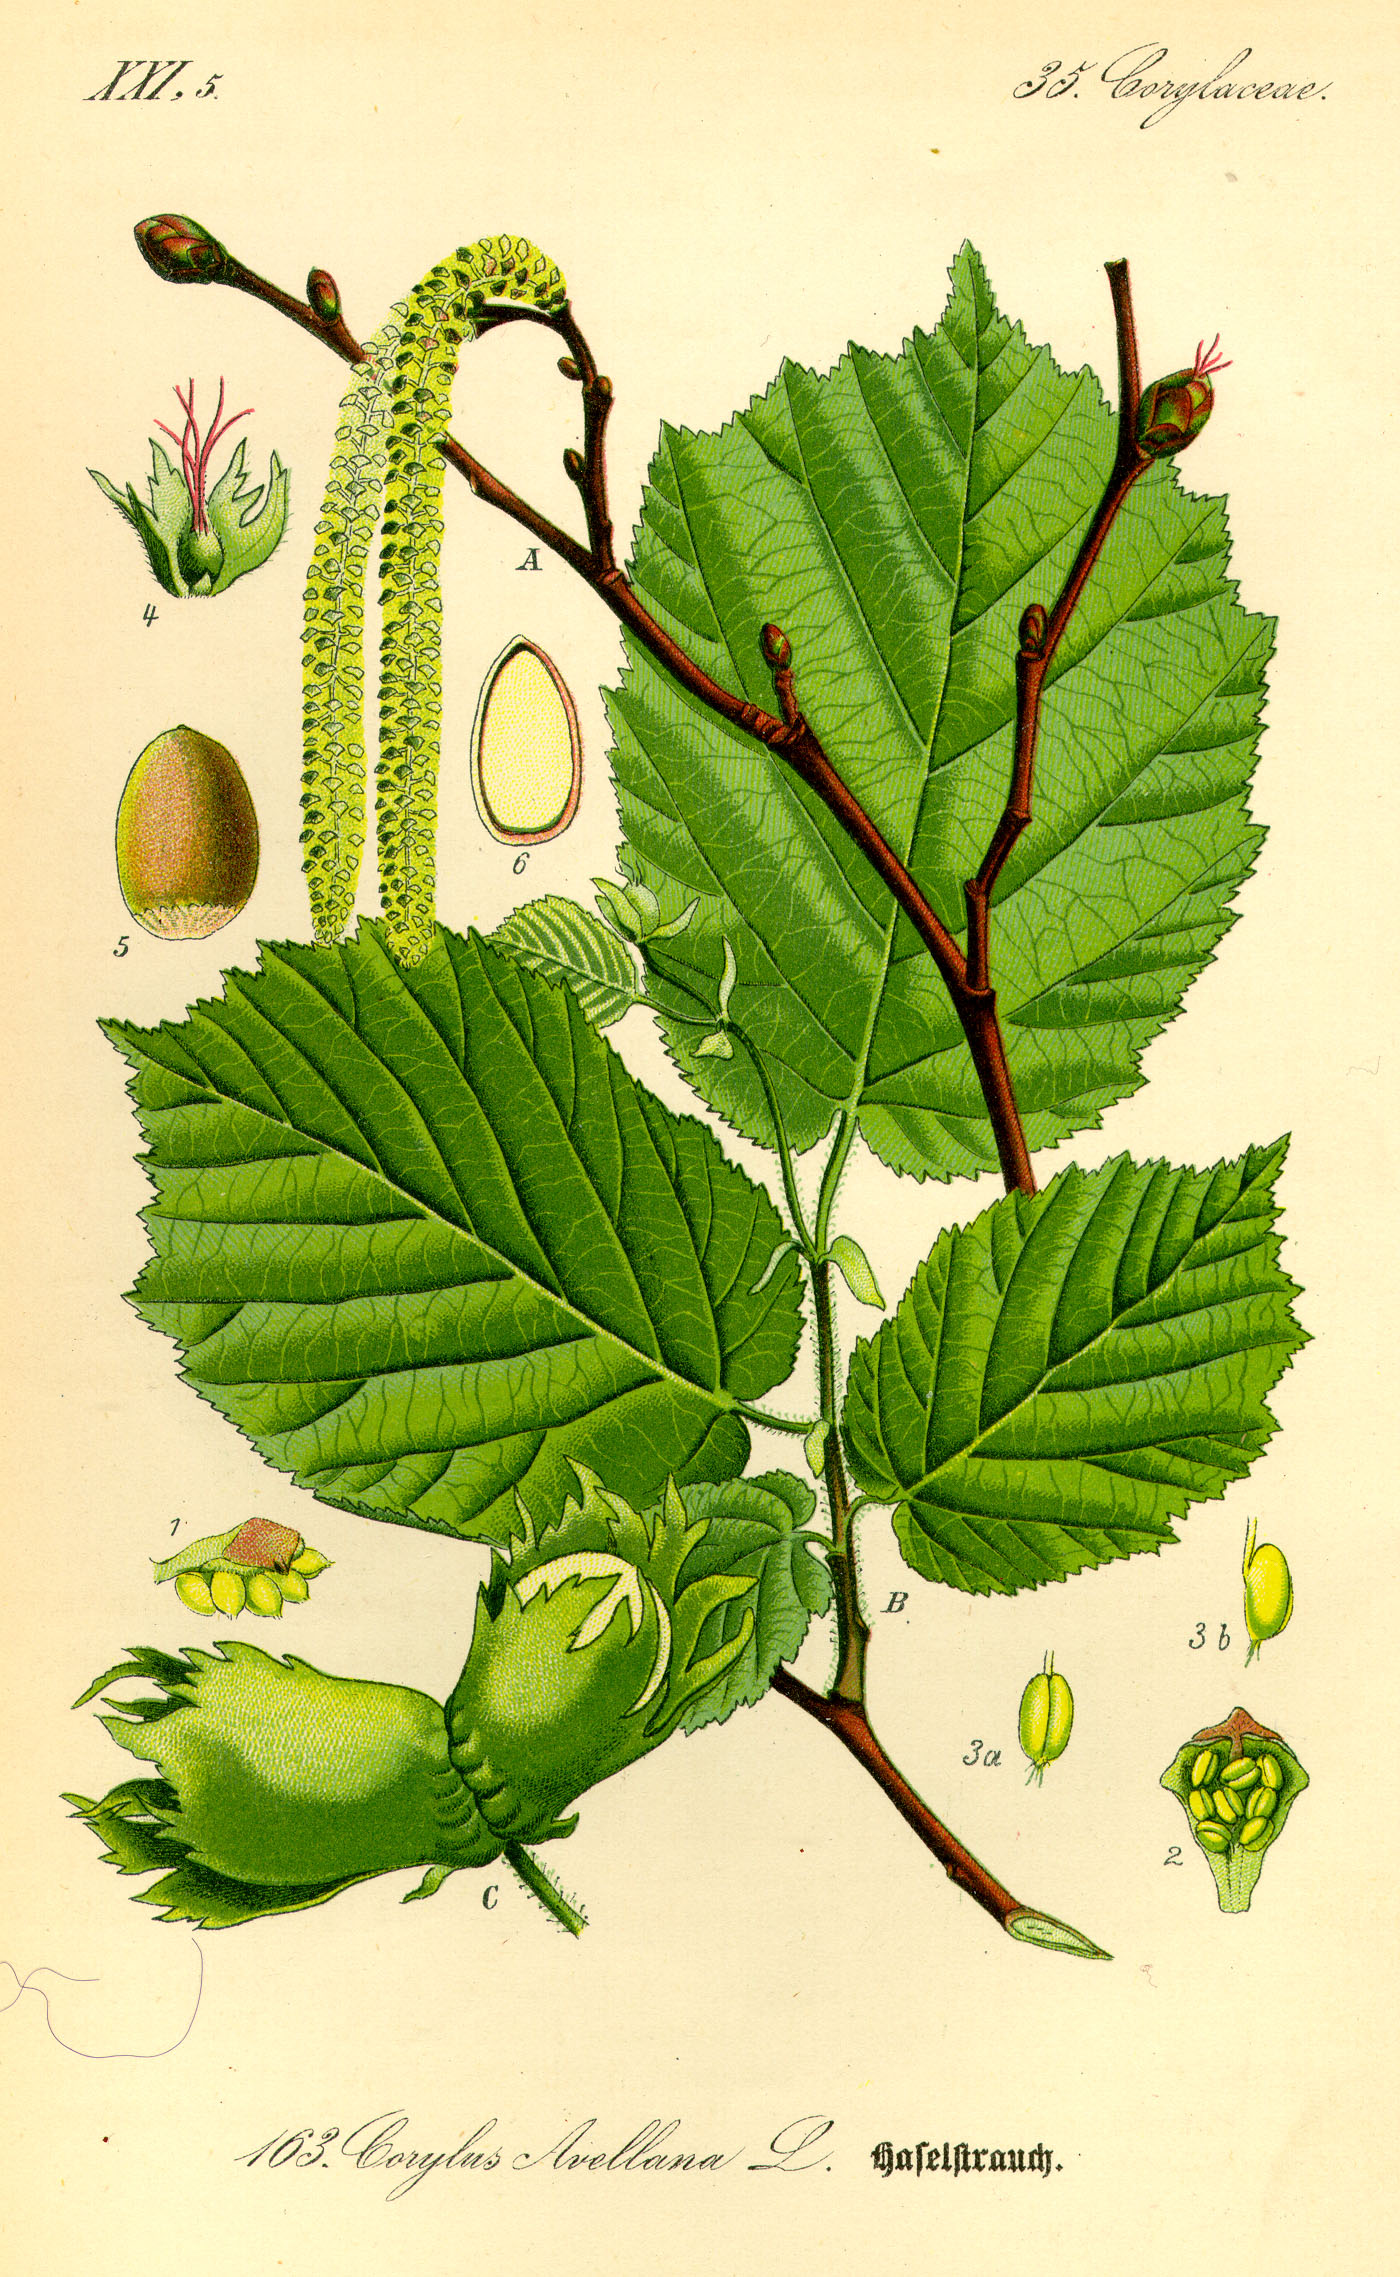 File:Illustration Corylus avellana0.jpg - Wikipedia, the free ...